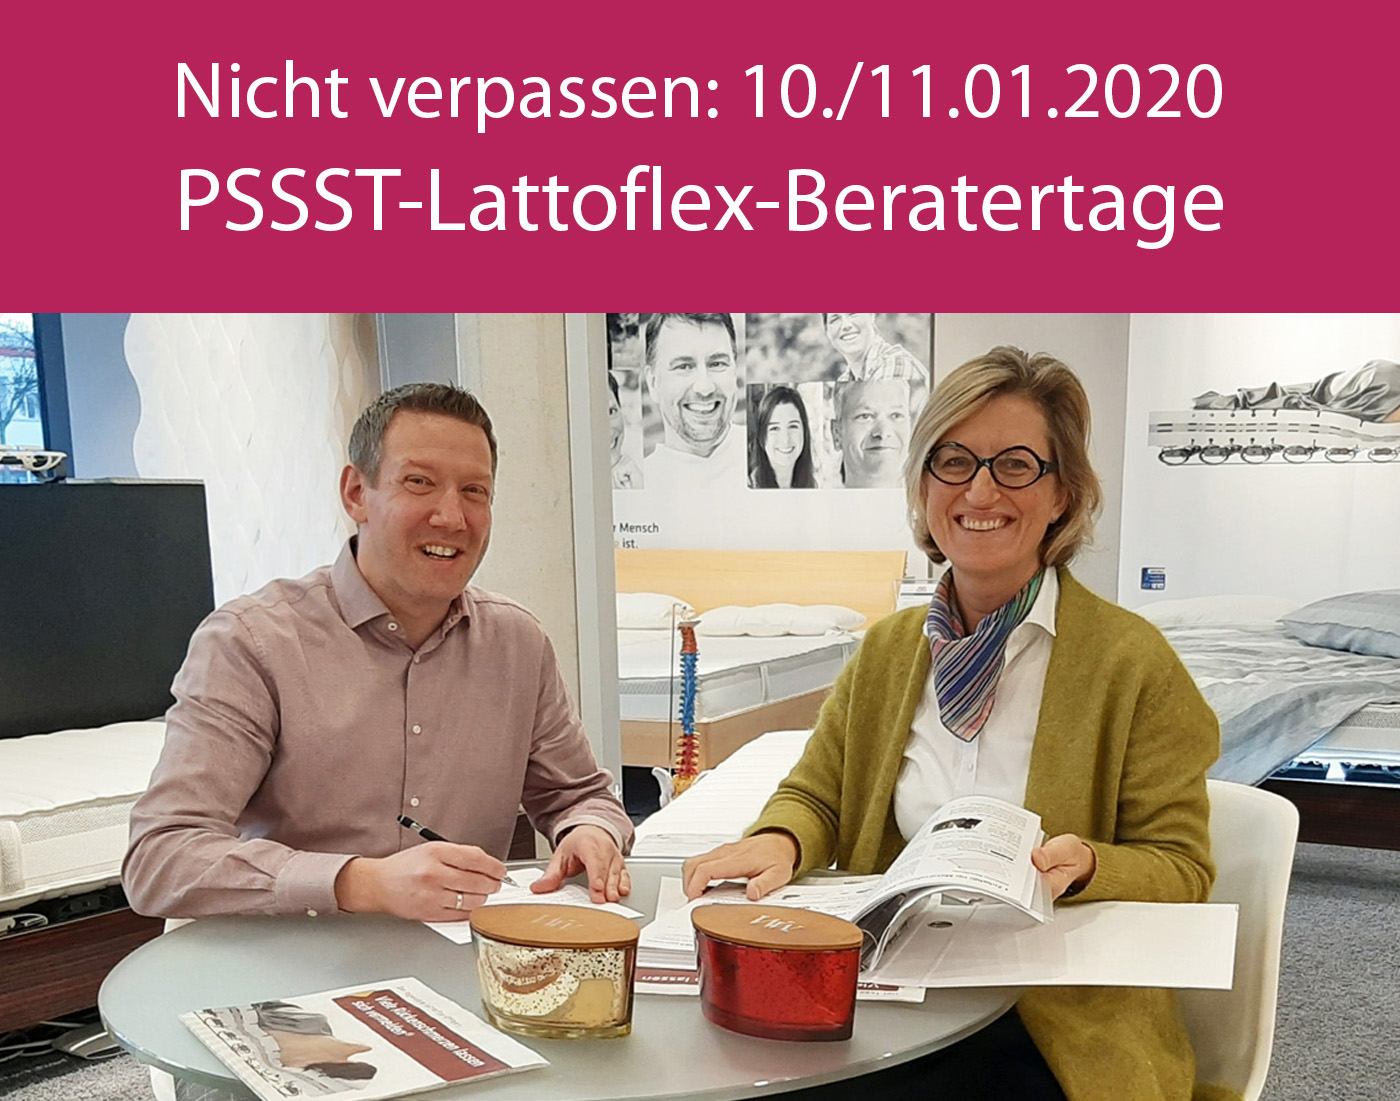 PSSST-Lattoflex-Beratertage 10-11.01.2020